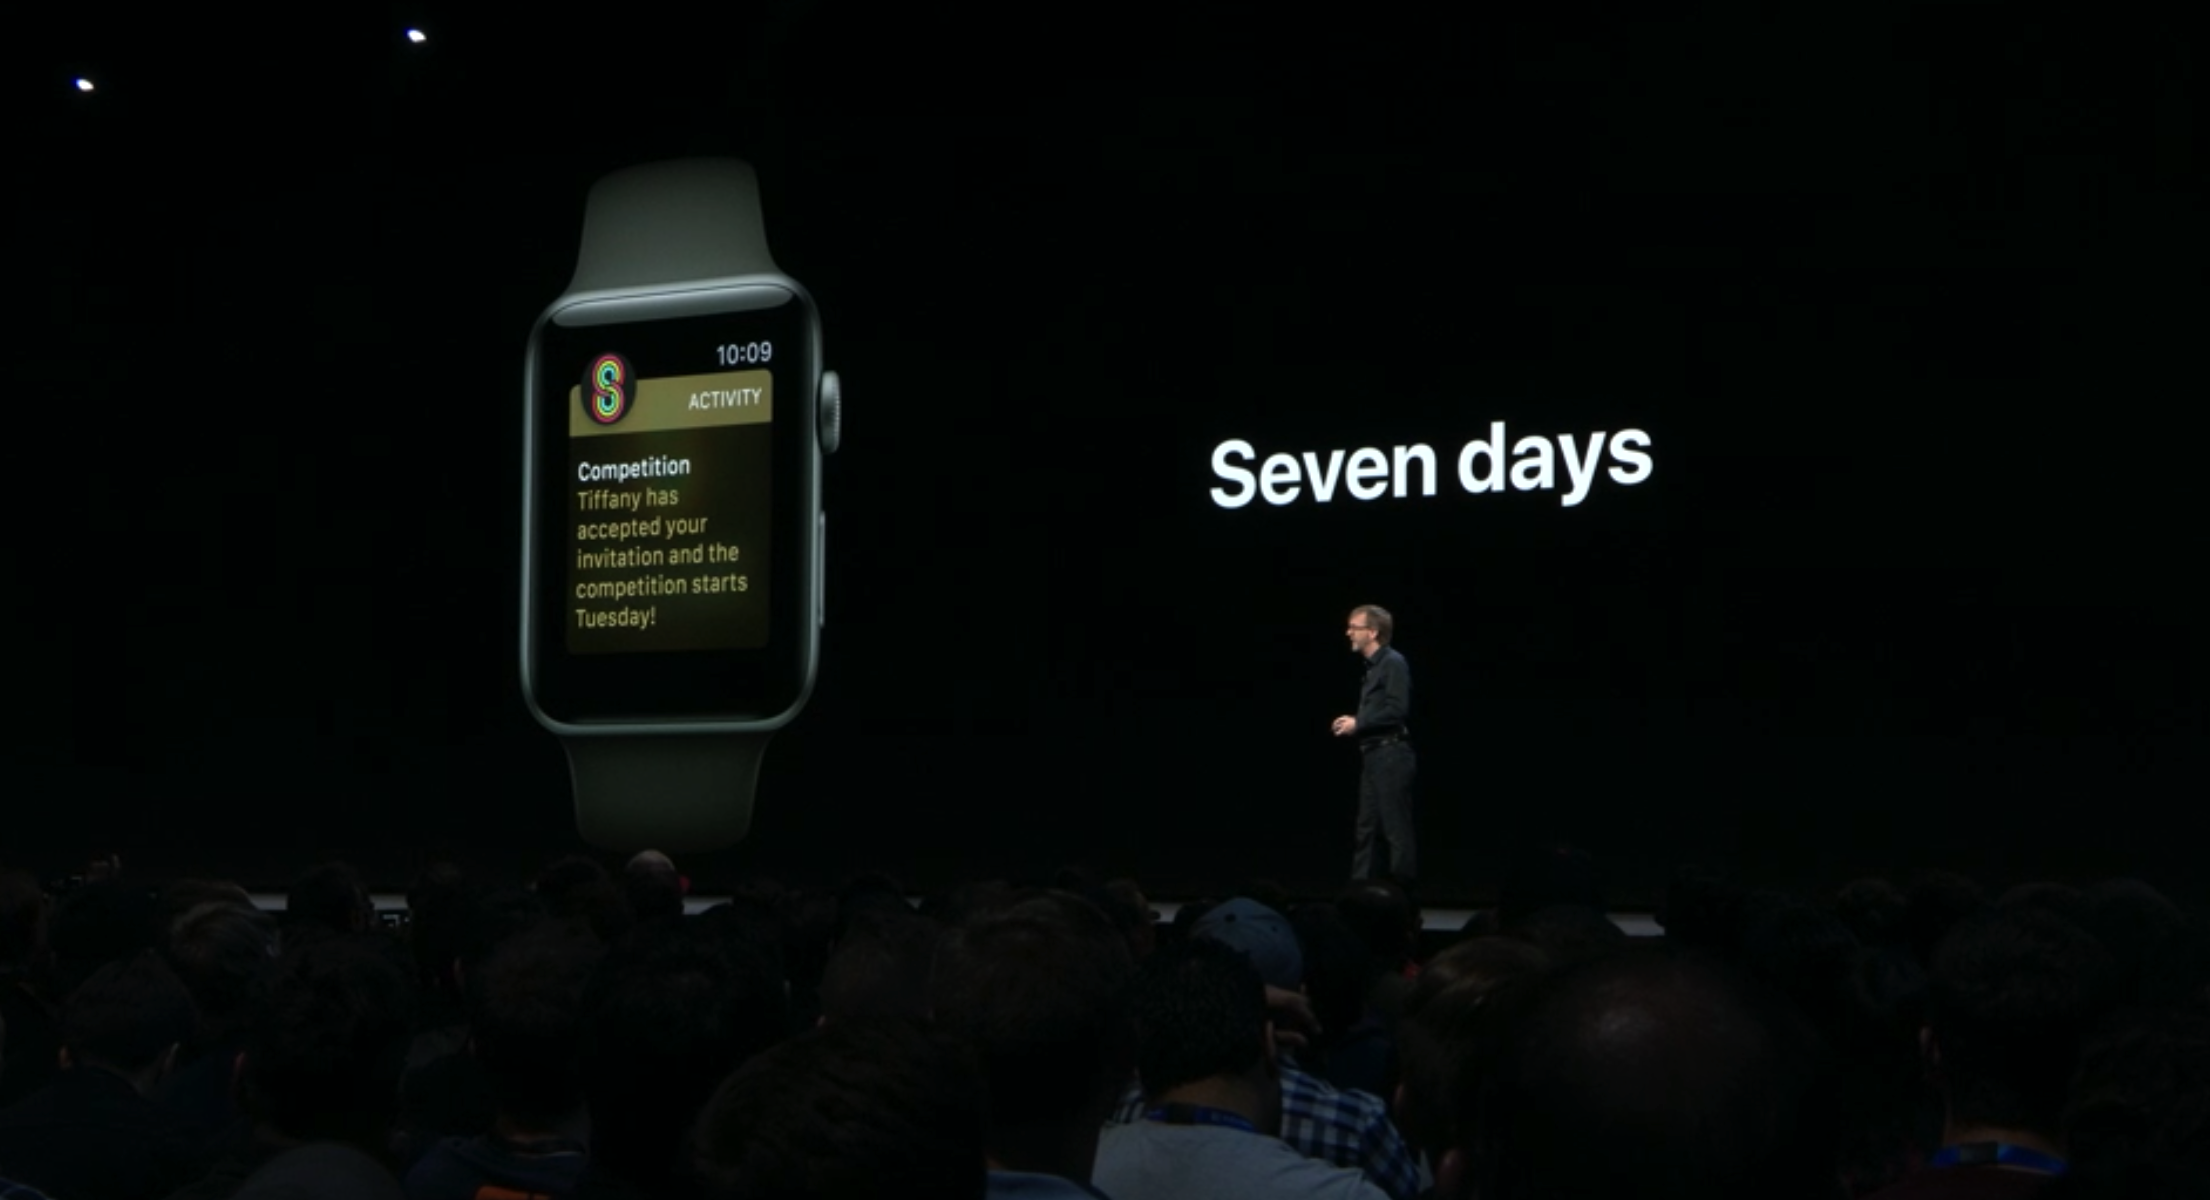 The new 7-day competitions in the Apple Watch Activity app